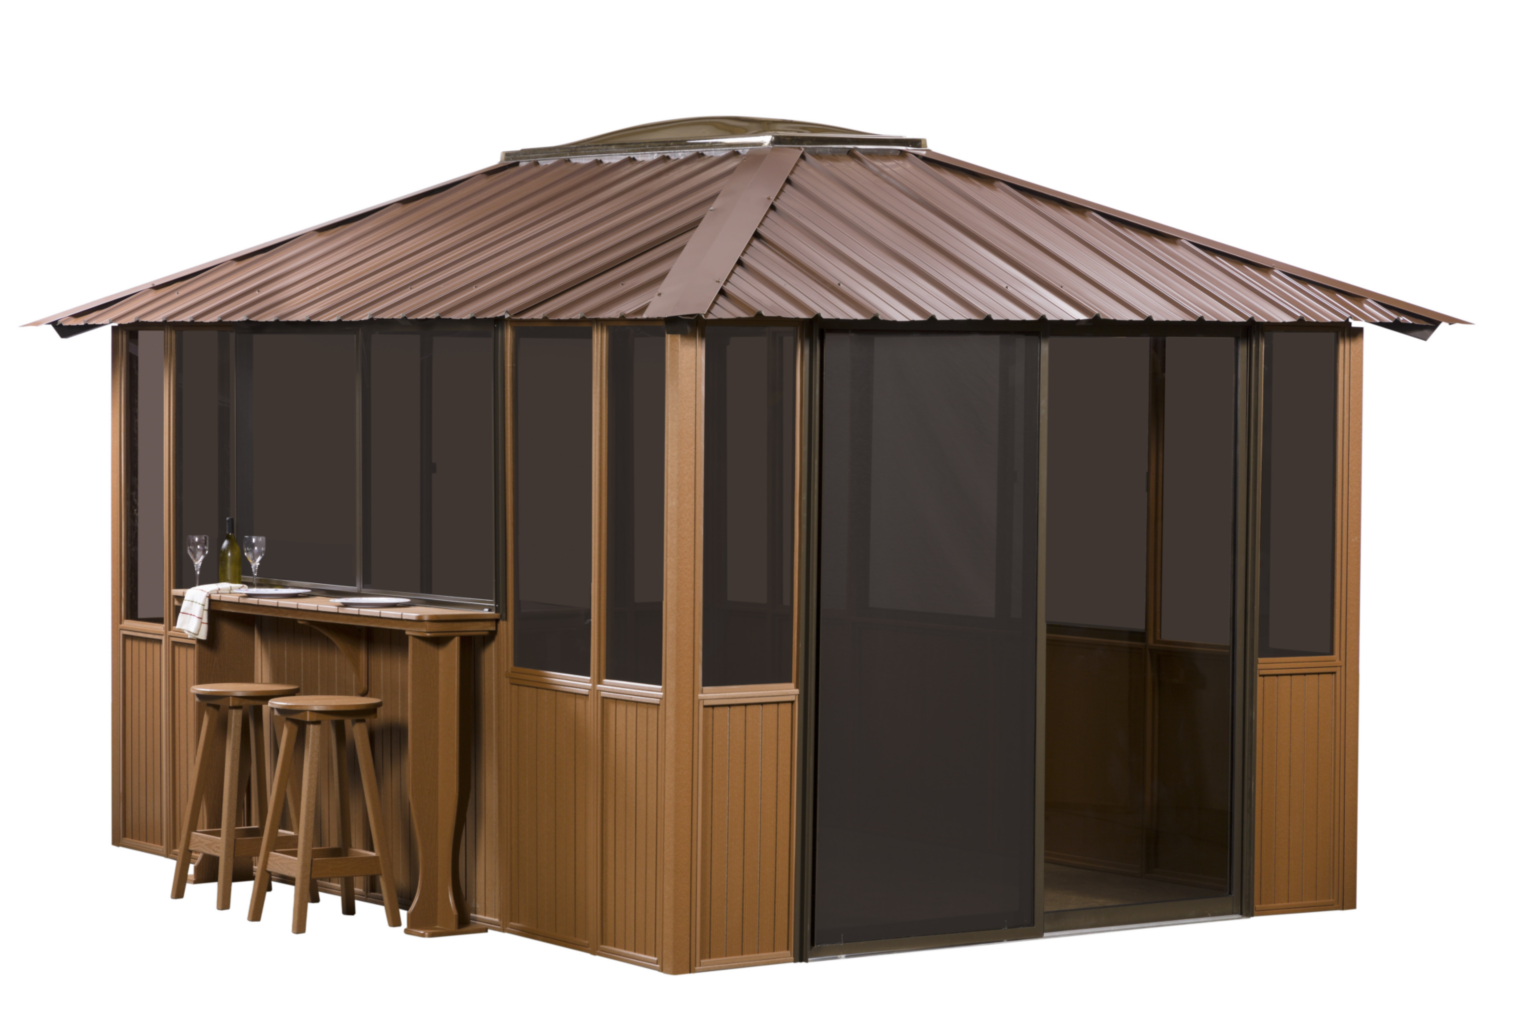 Brown Gazebo Transparent